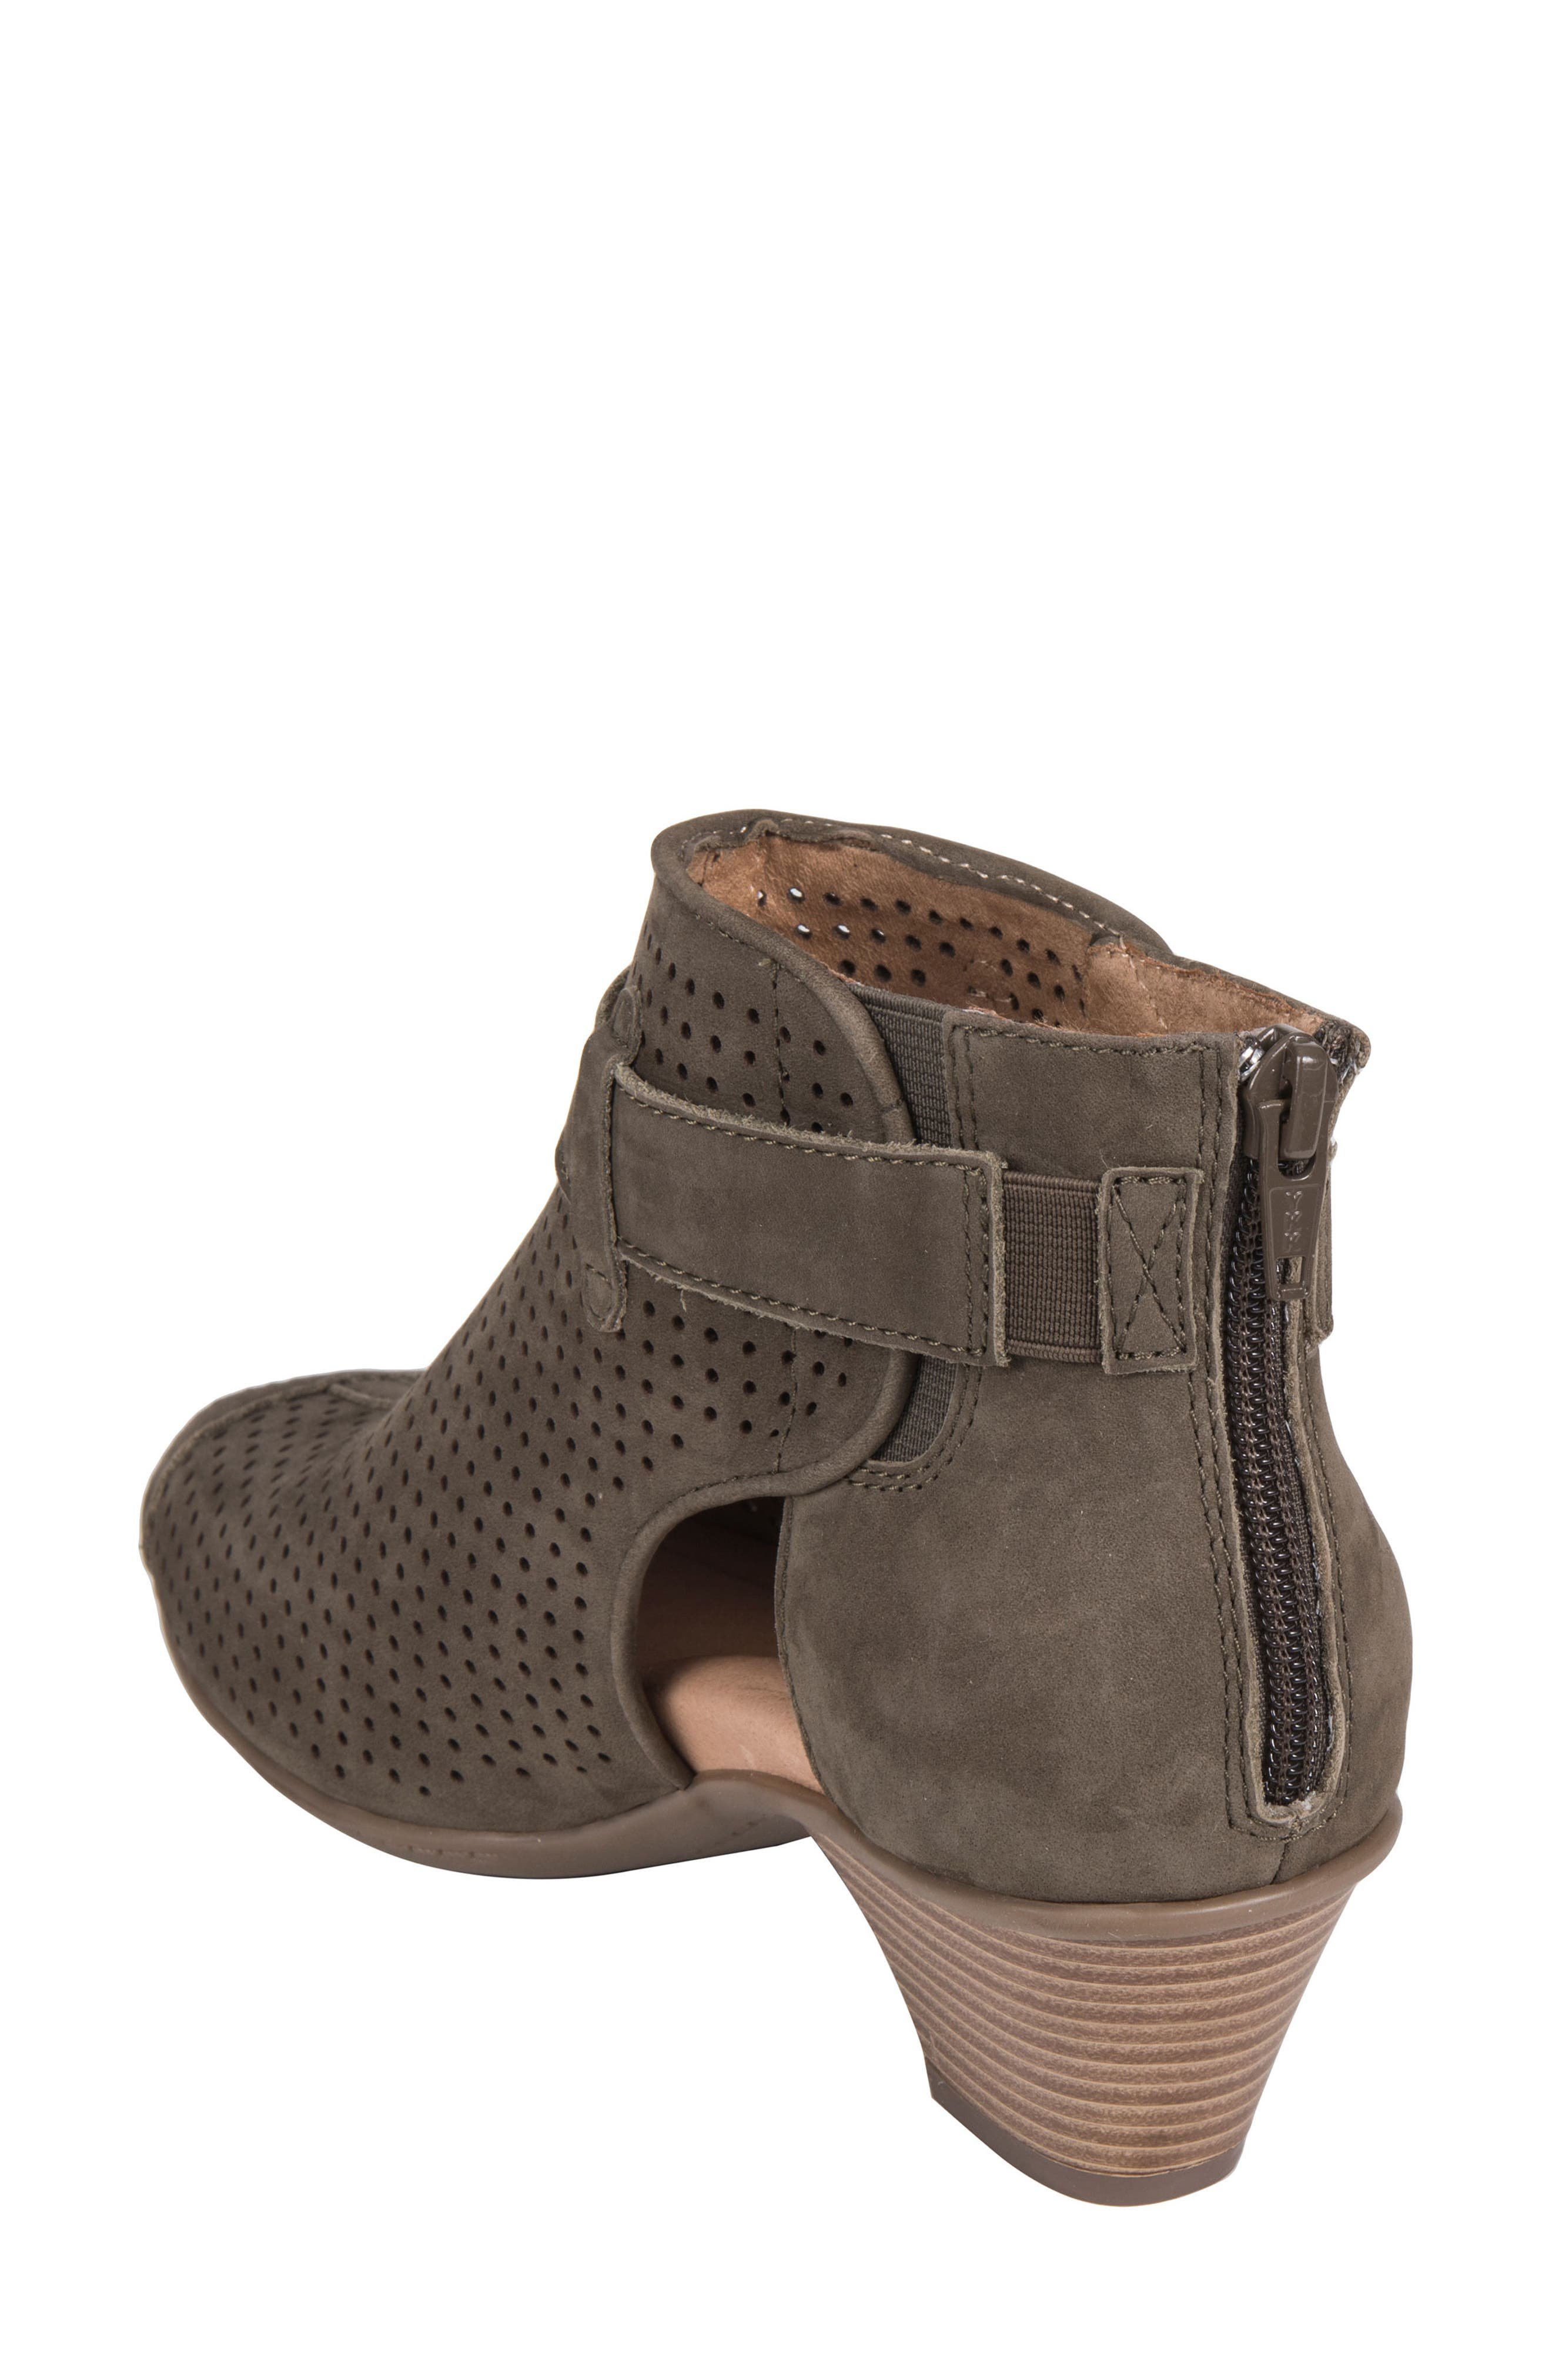 Intrepid Peep Toe Bootie,                             Alternate thumbnail 2, color,                             DARK OLIVE NUBUCK